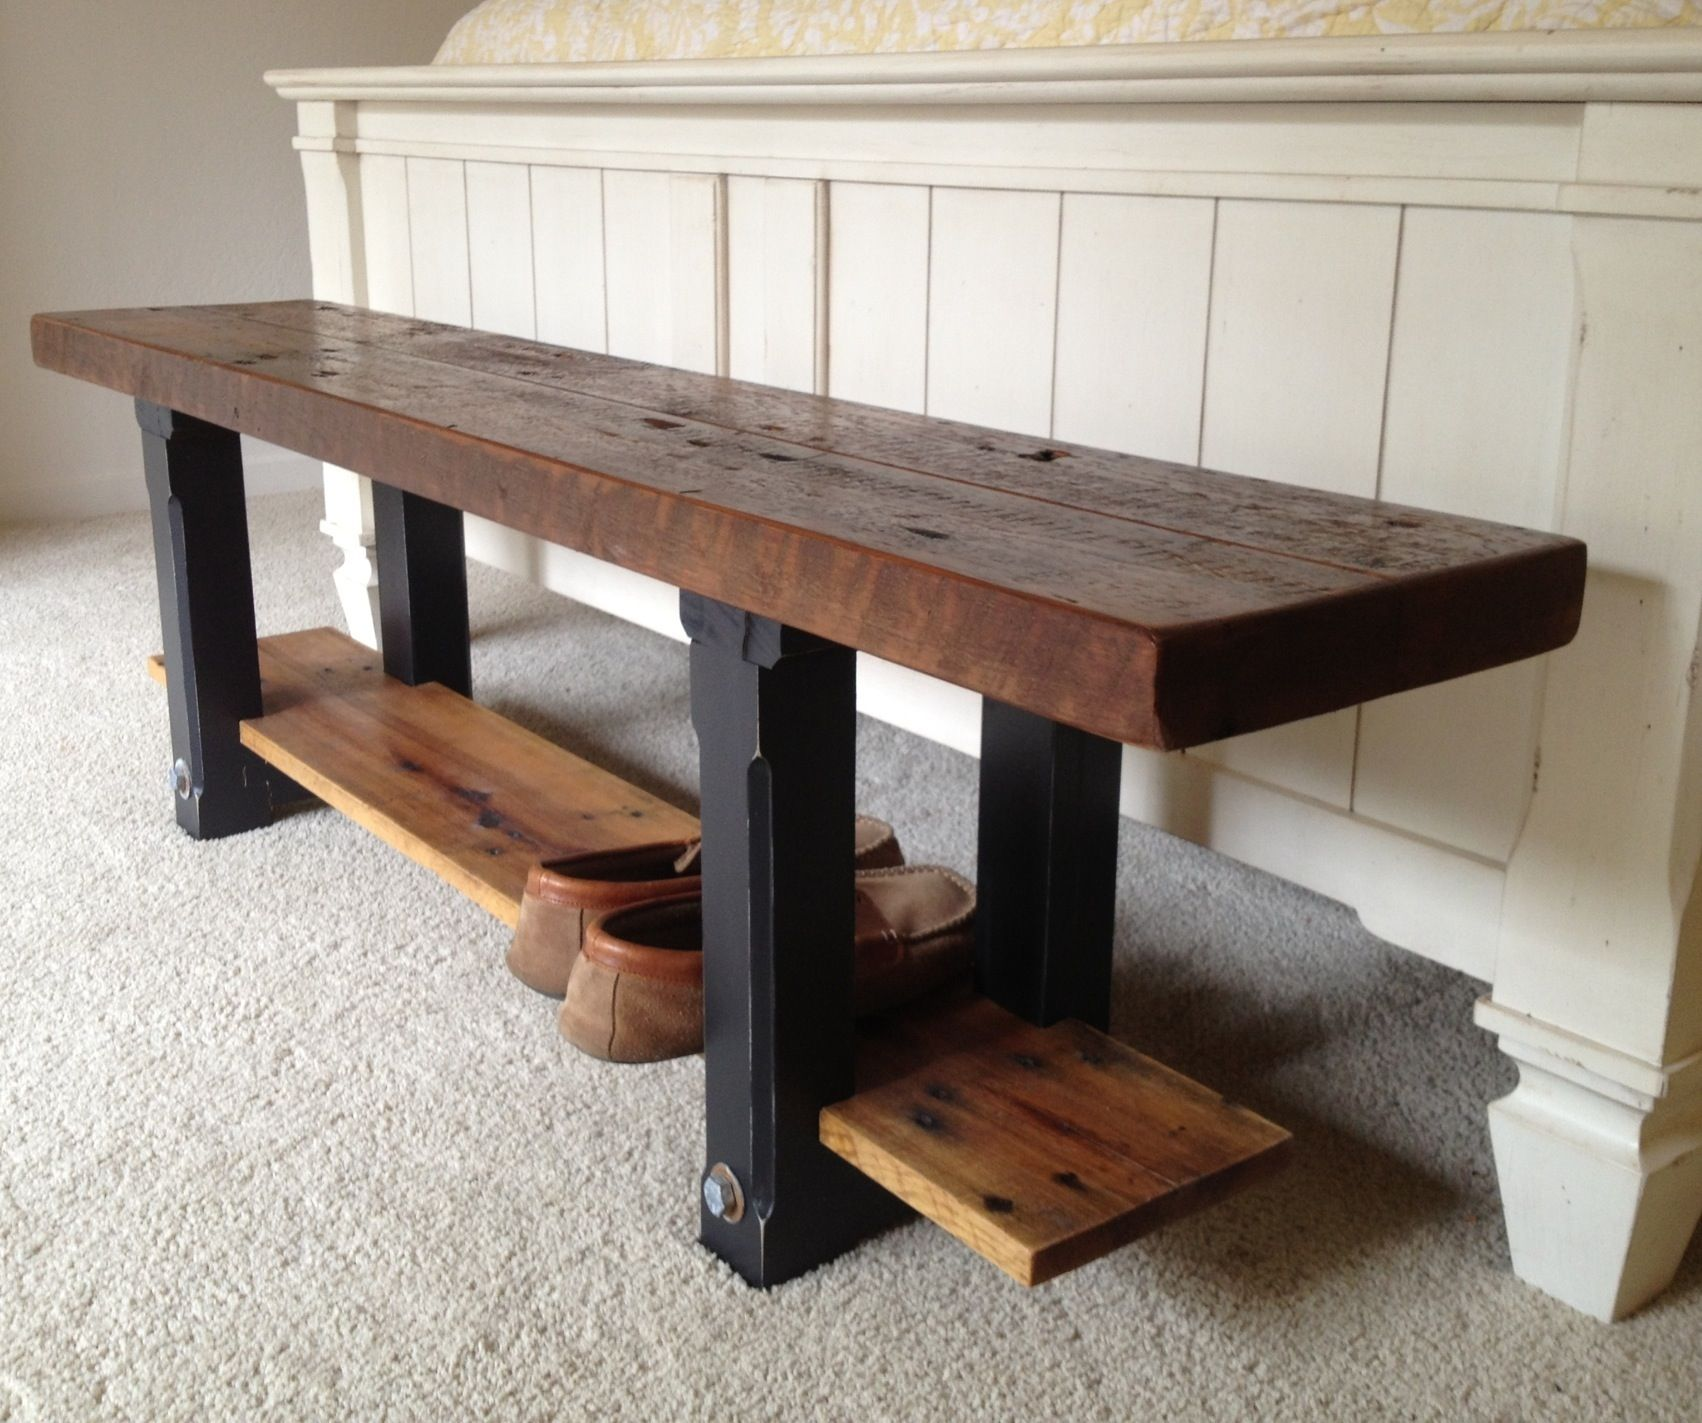 Images about old barn wood furniture on pinterest - 2 Layers Of Reclaimed Wood Minus The Ugly Legs